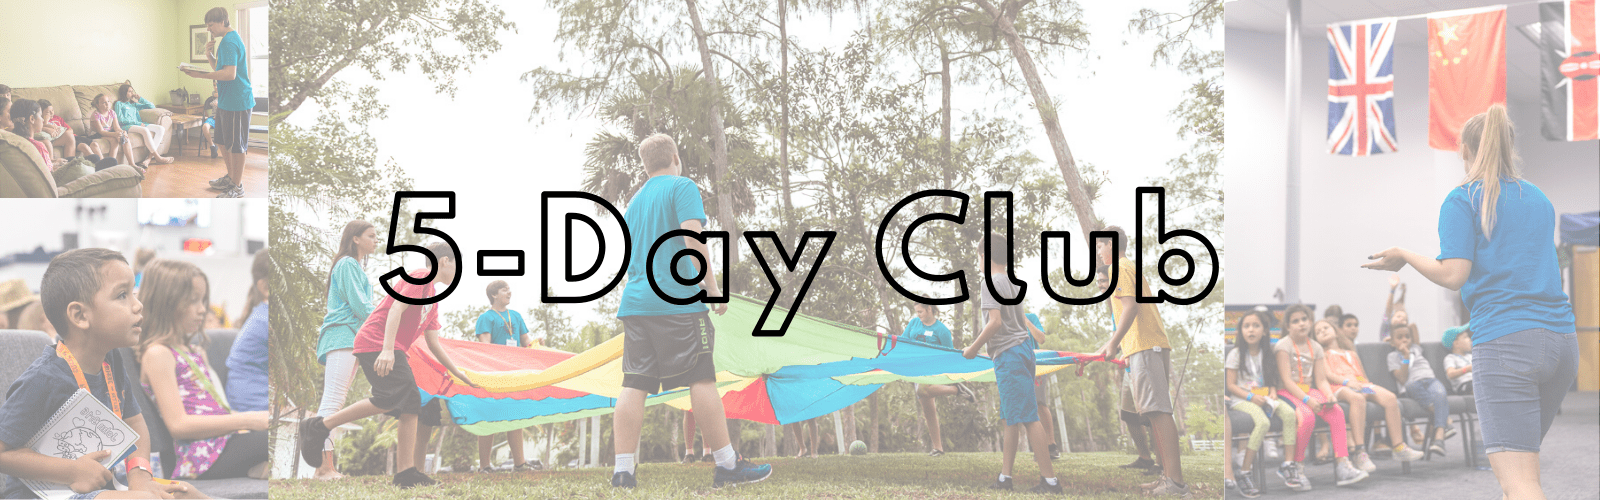 5-Day Club ministry cef of collier county